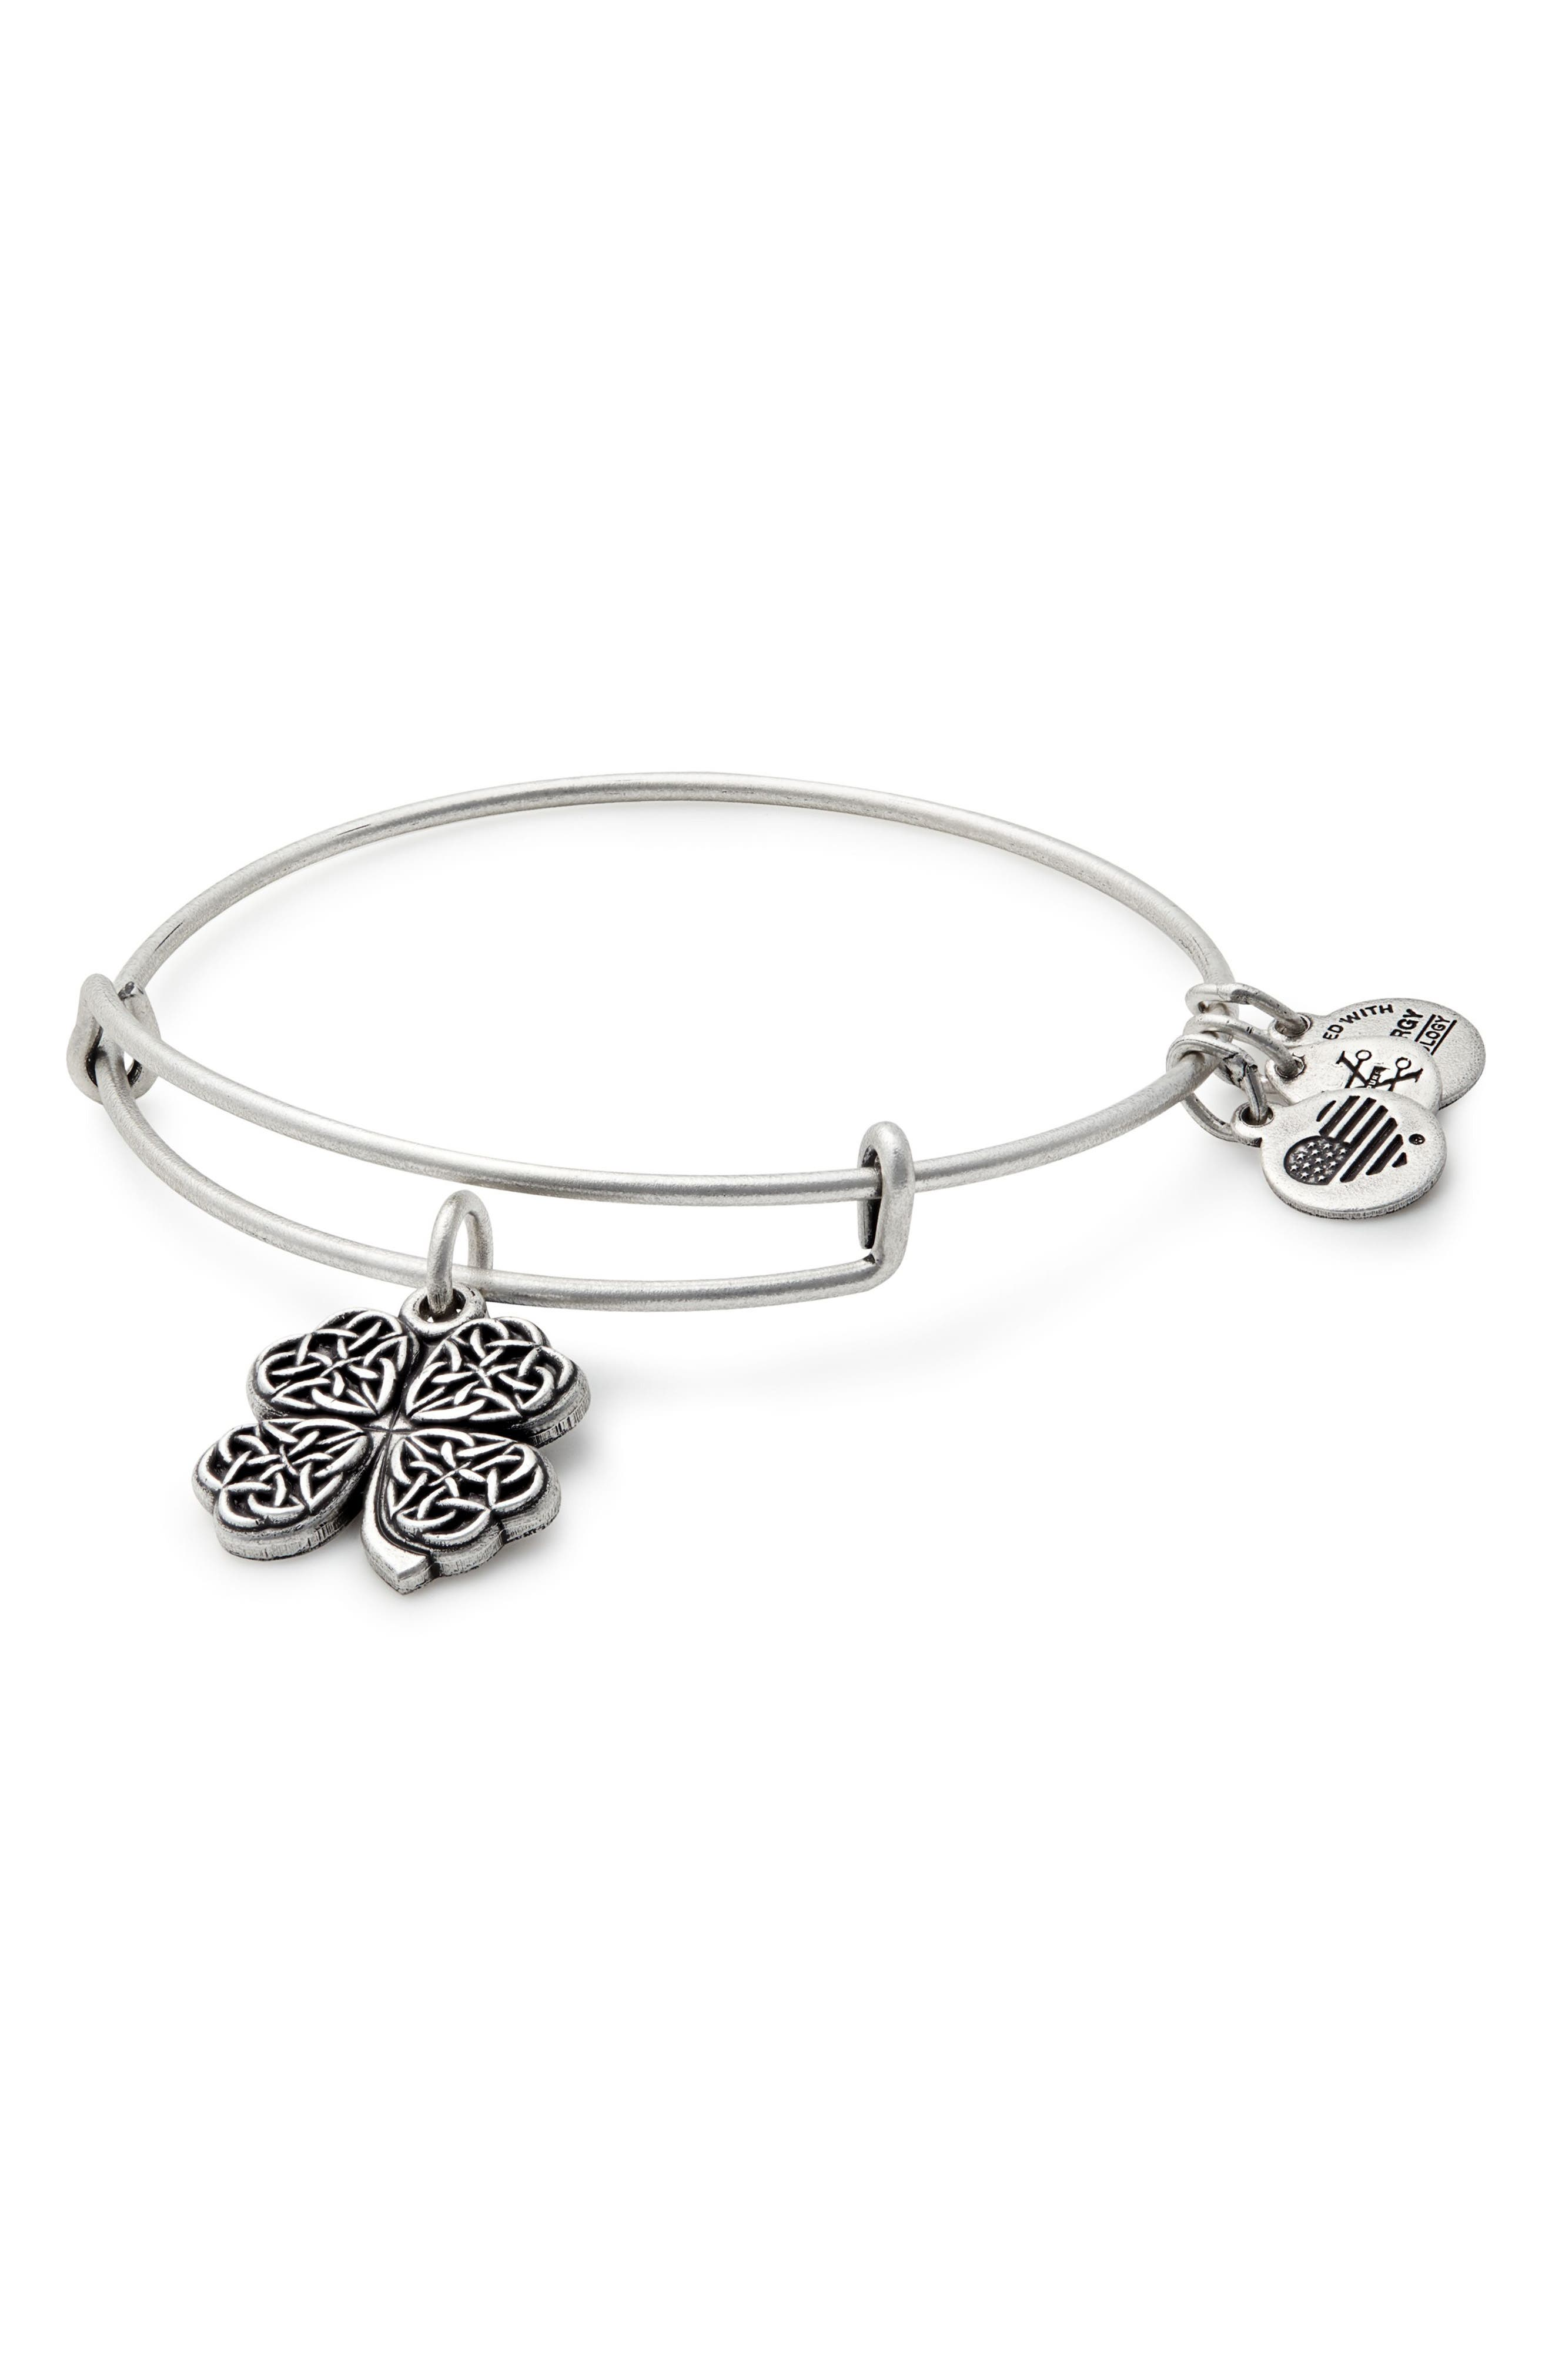 Four-Leaf Clover Adjustable Wire Bangle,                             Main thumbnail 1, color,                             RUSSIAN SILVER